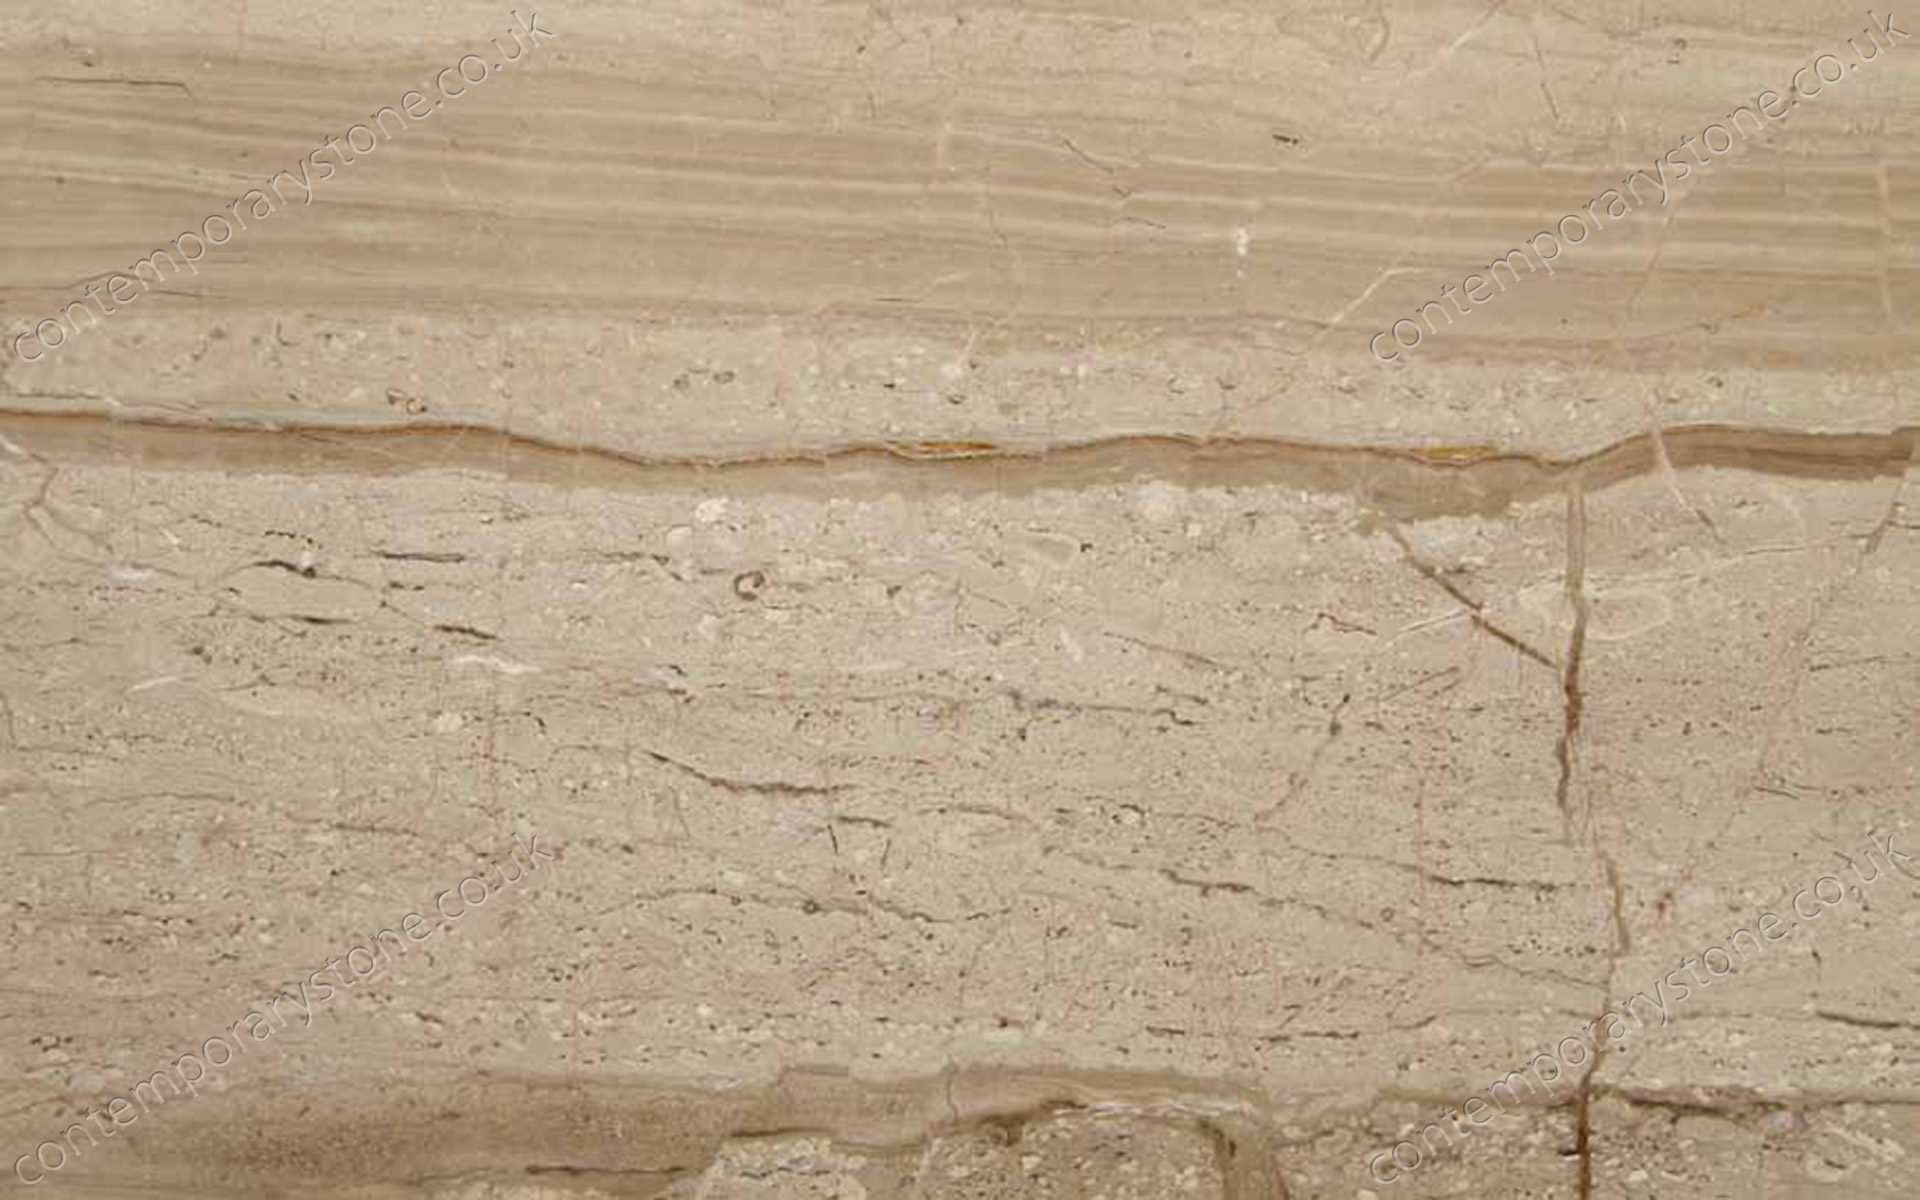 Breccia Sarda marble close-up